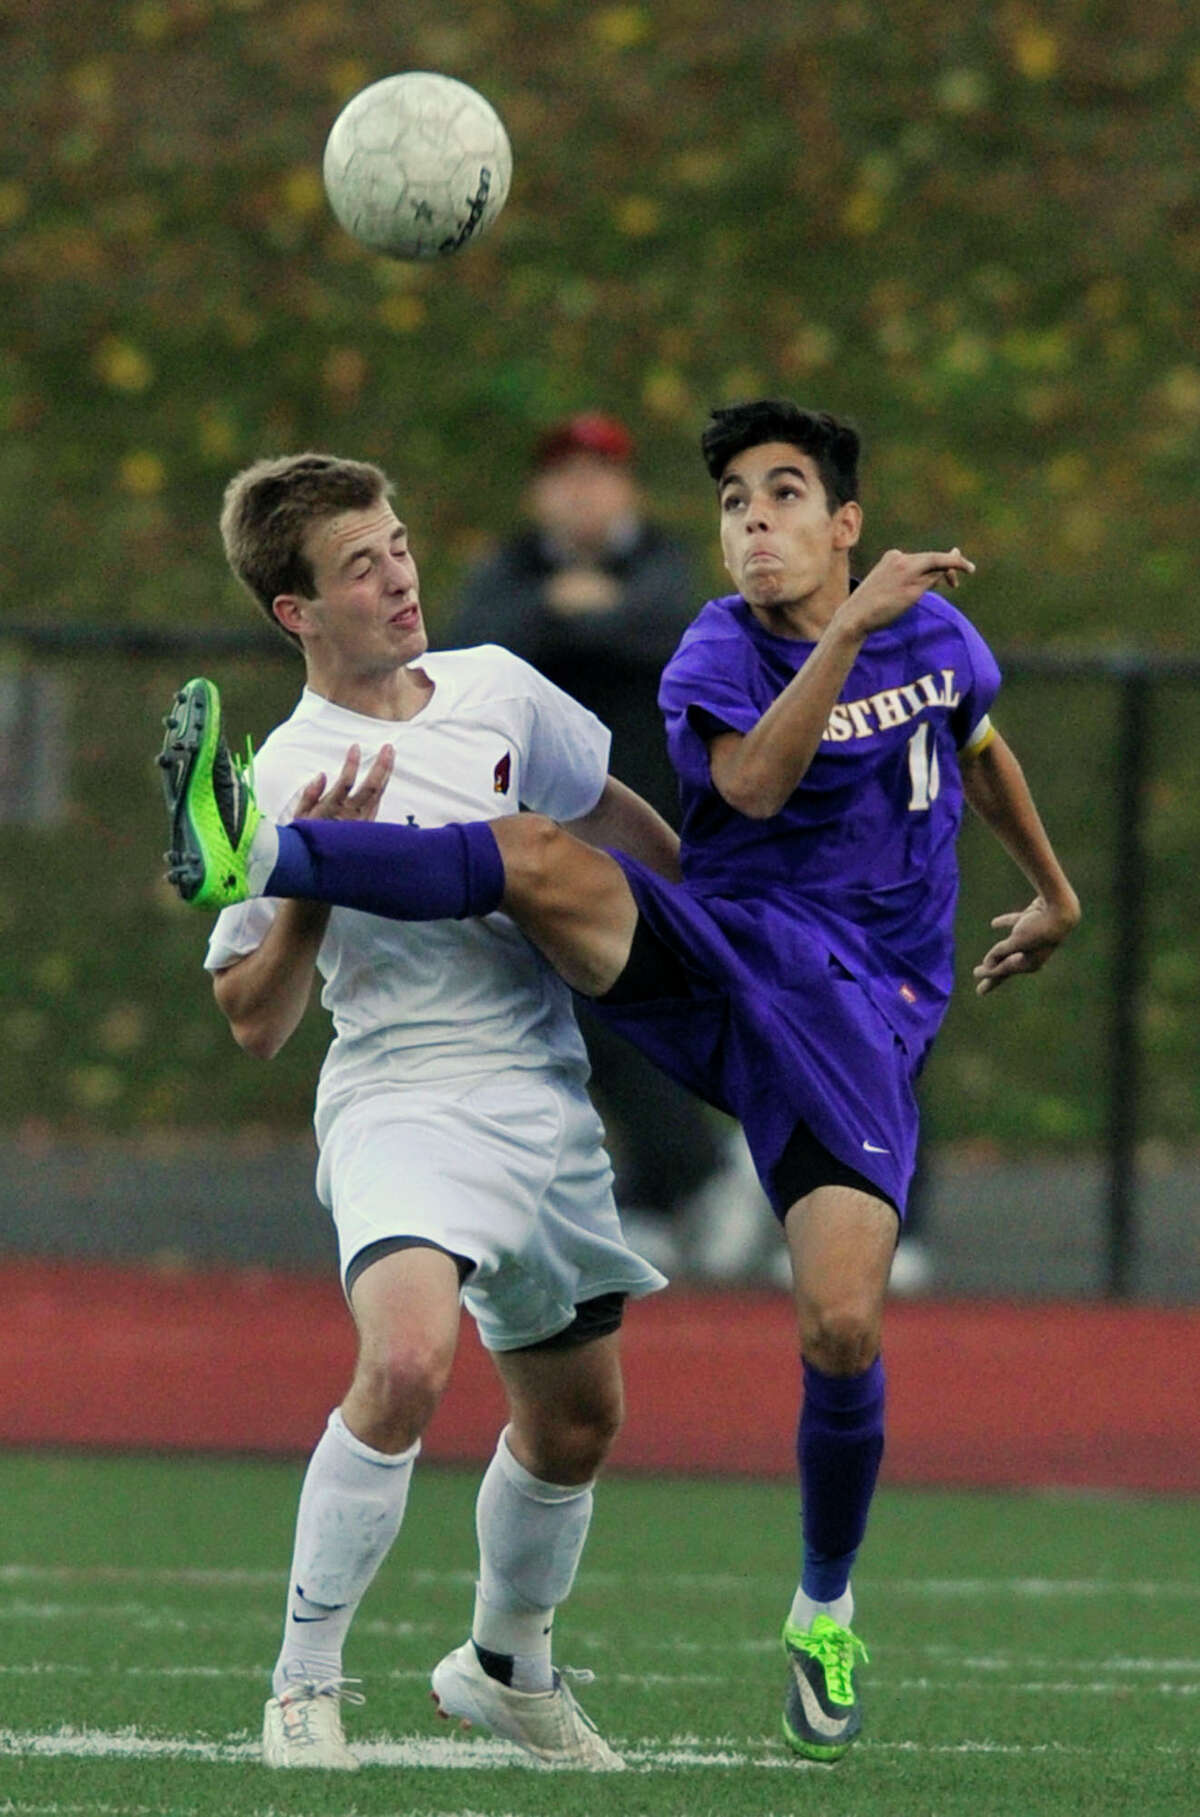 (9) In a soccer world filled with players recognized by one name only, Westhill's Filosmar Cordeiro would fit right in with the likes of Messi, Renaldino, and Beckham. Filosmar's name matches the skill level of the player who earned a spot on the Hearst Super 15 boys soccer team.